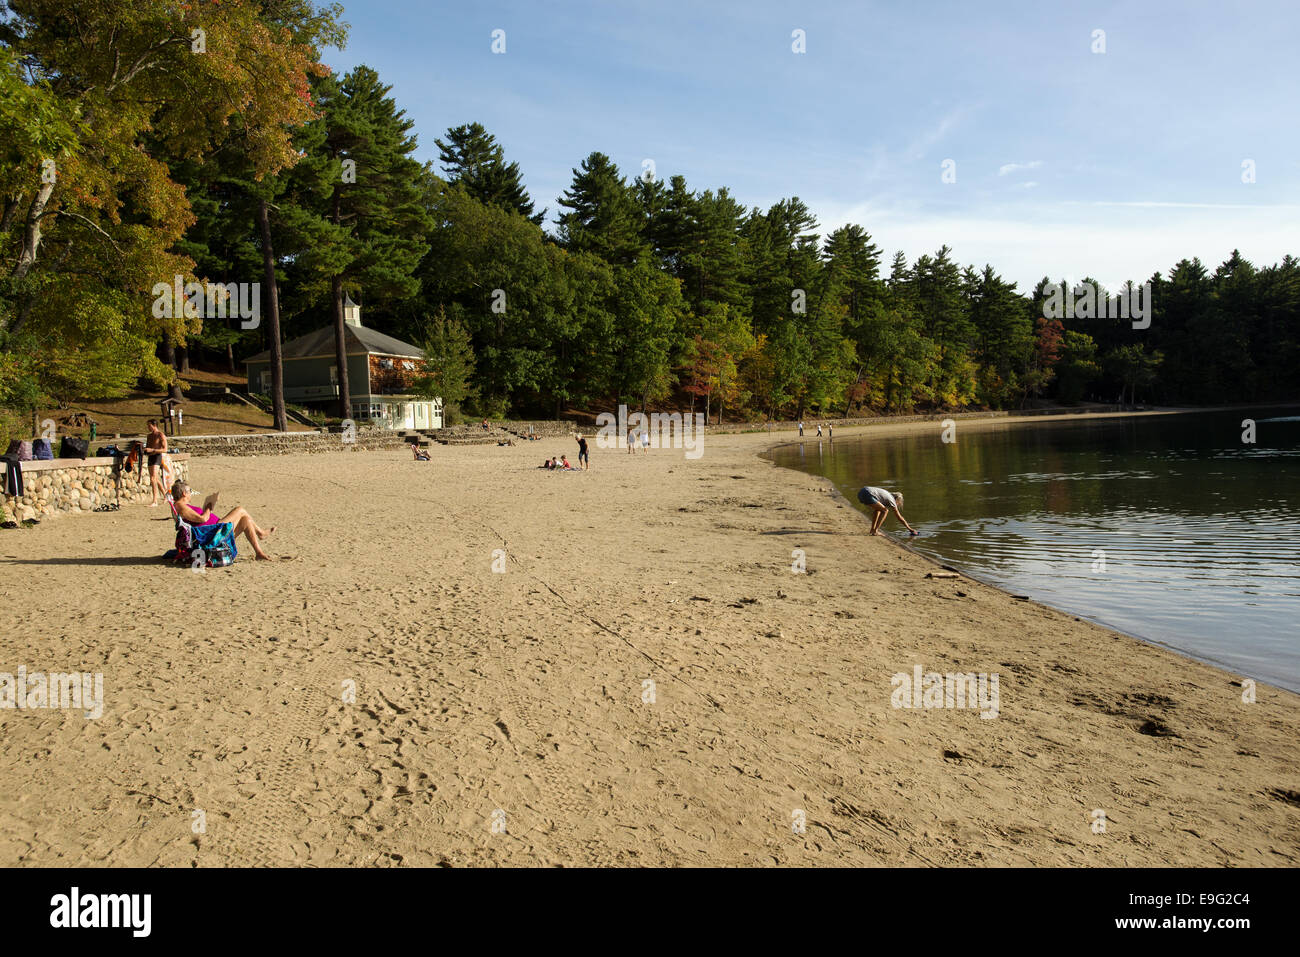 Scenic view of Walden Pond with people at leisure Concord MA Massachusetts USA - Stock Image